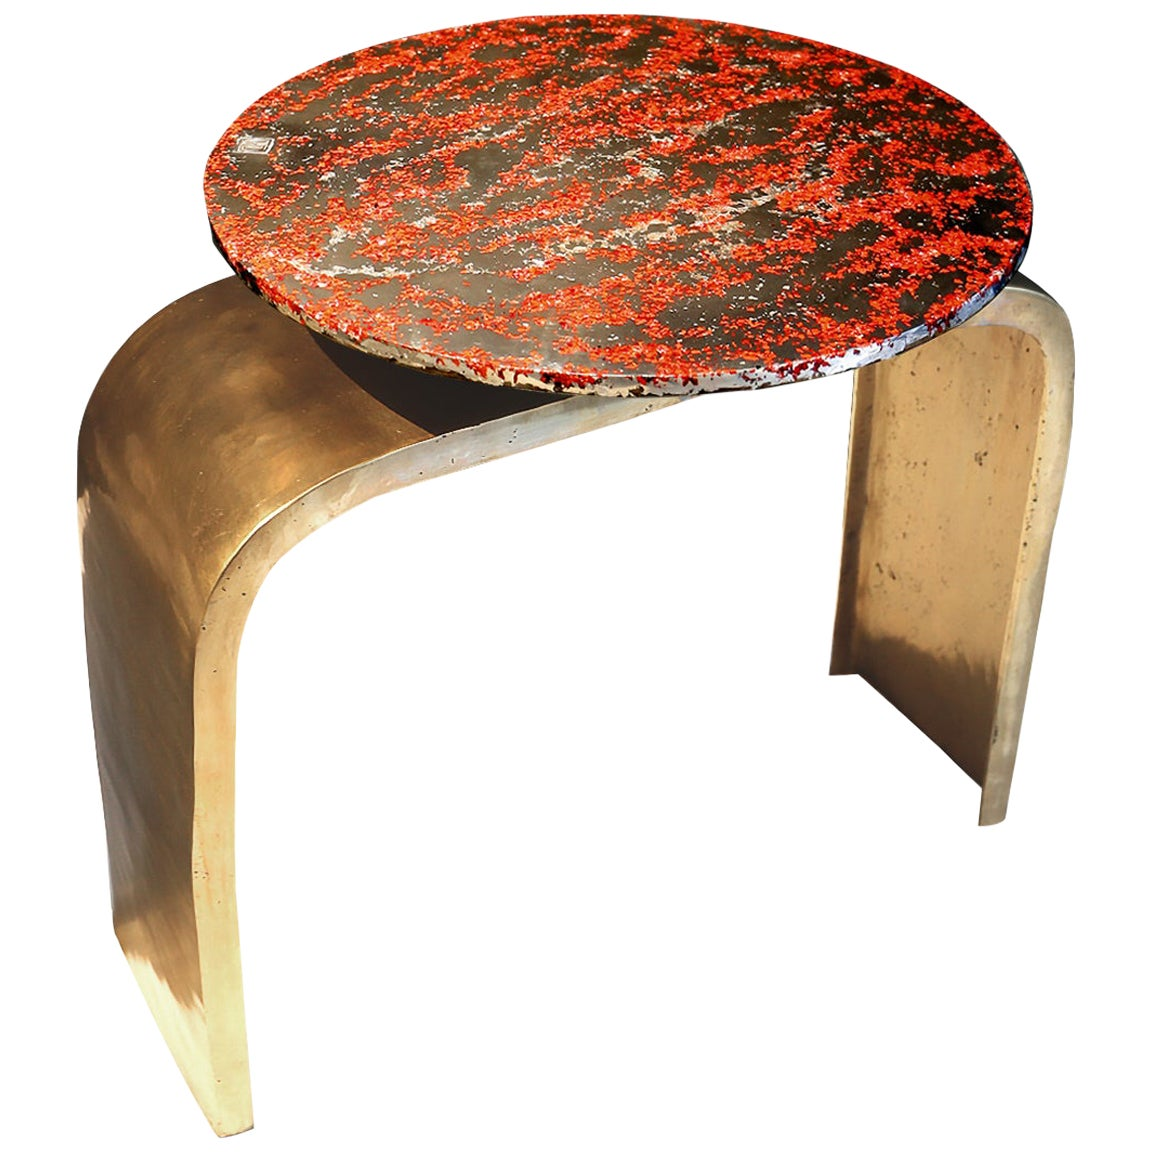 """Console Table """"Bridge legs red #2"""", Melted Pewter, Murano Glass, Crystal Resin"""